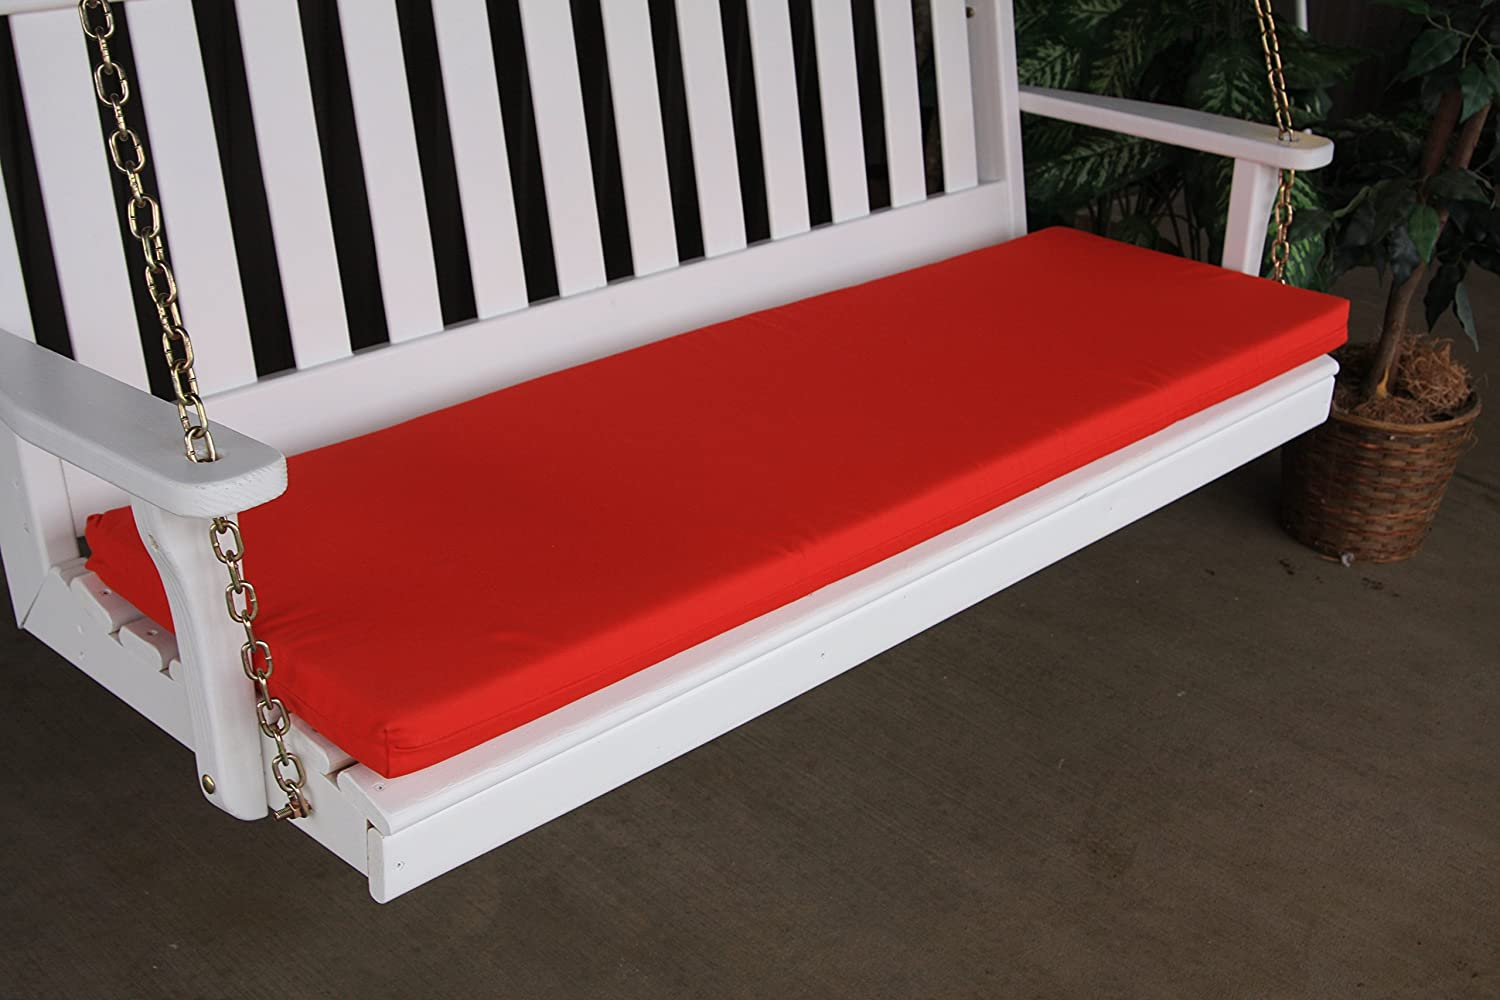 A L Furniture Sundown Agora 5 Cushion for Bench Or Porch Swing, 55 L 17 W 2 T, Red